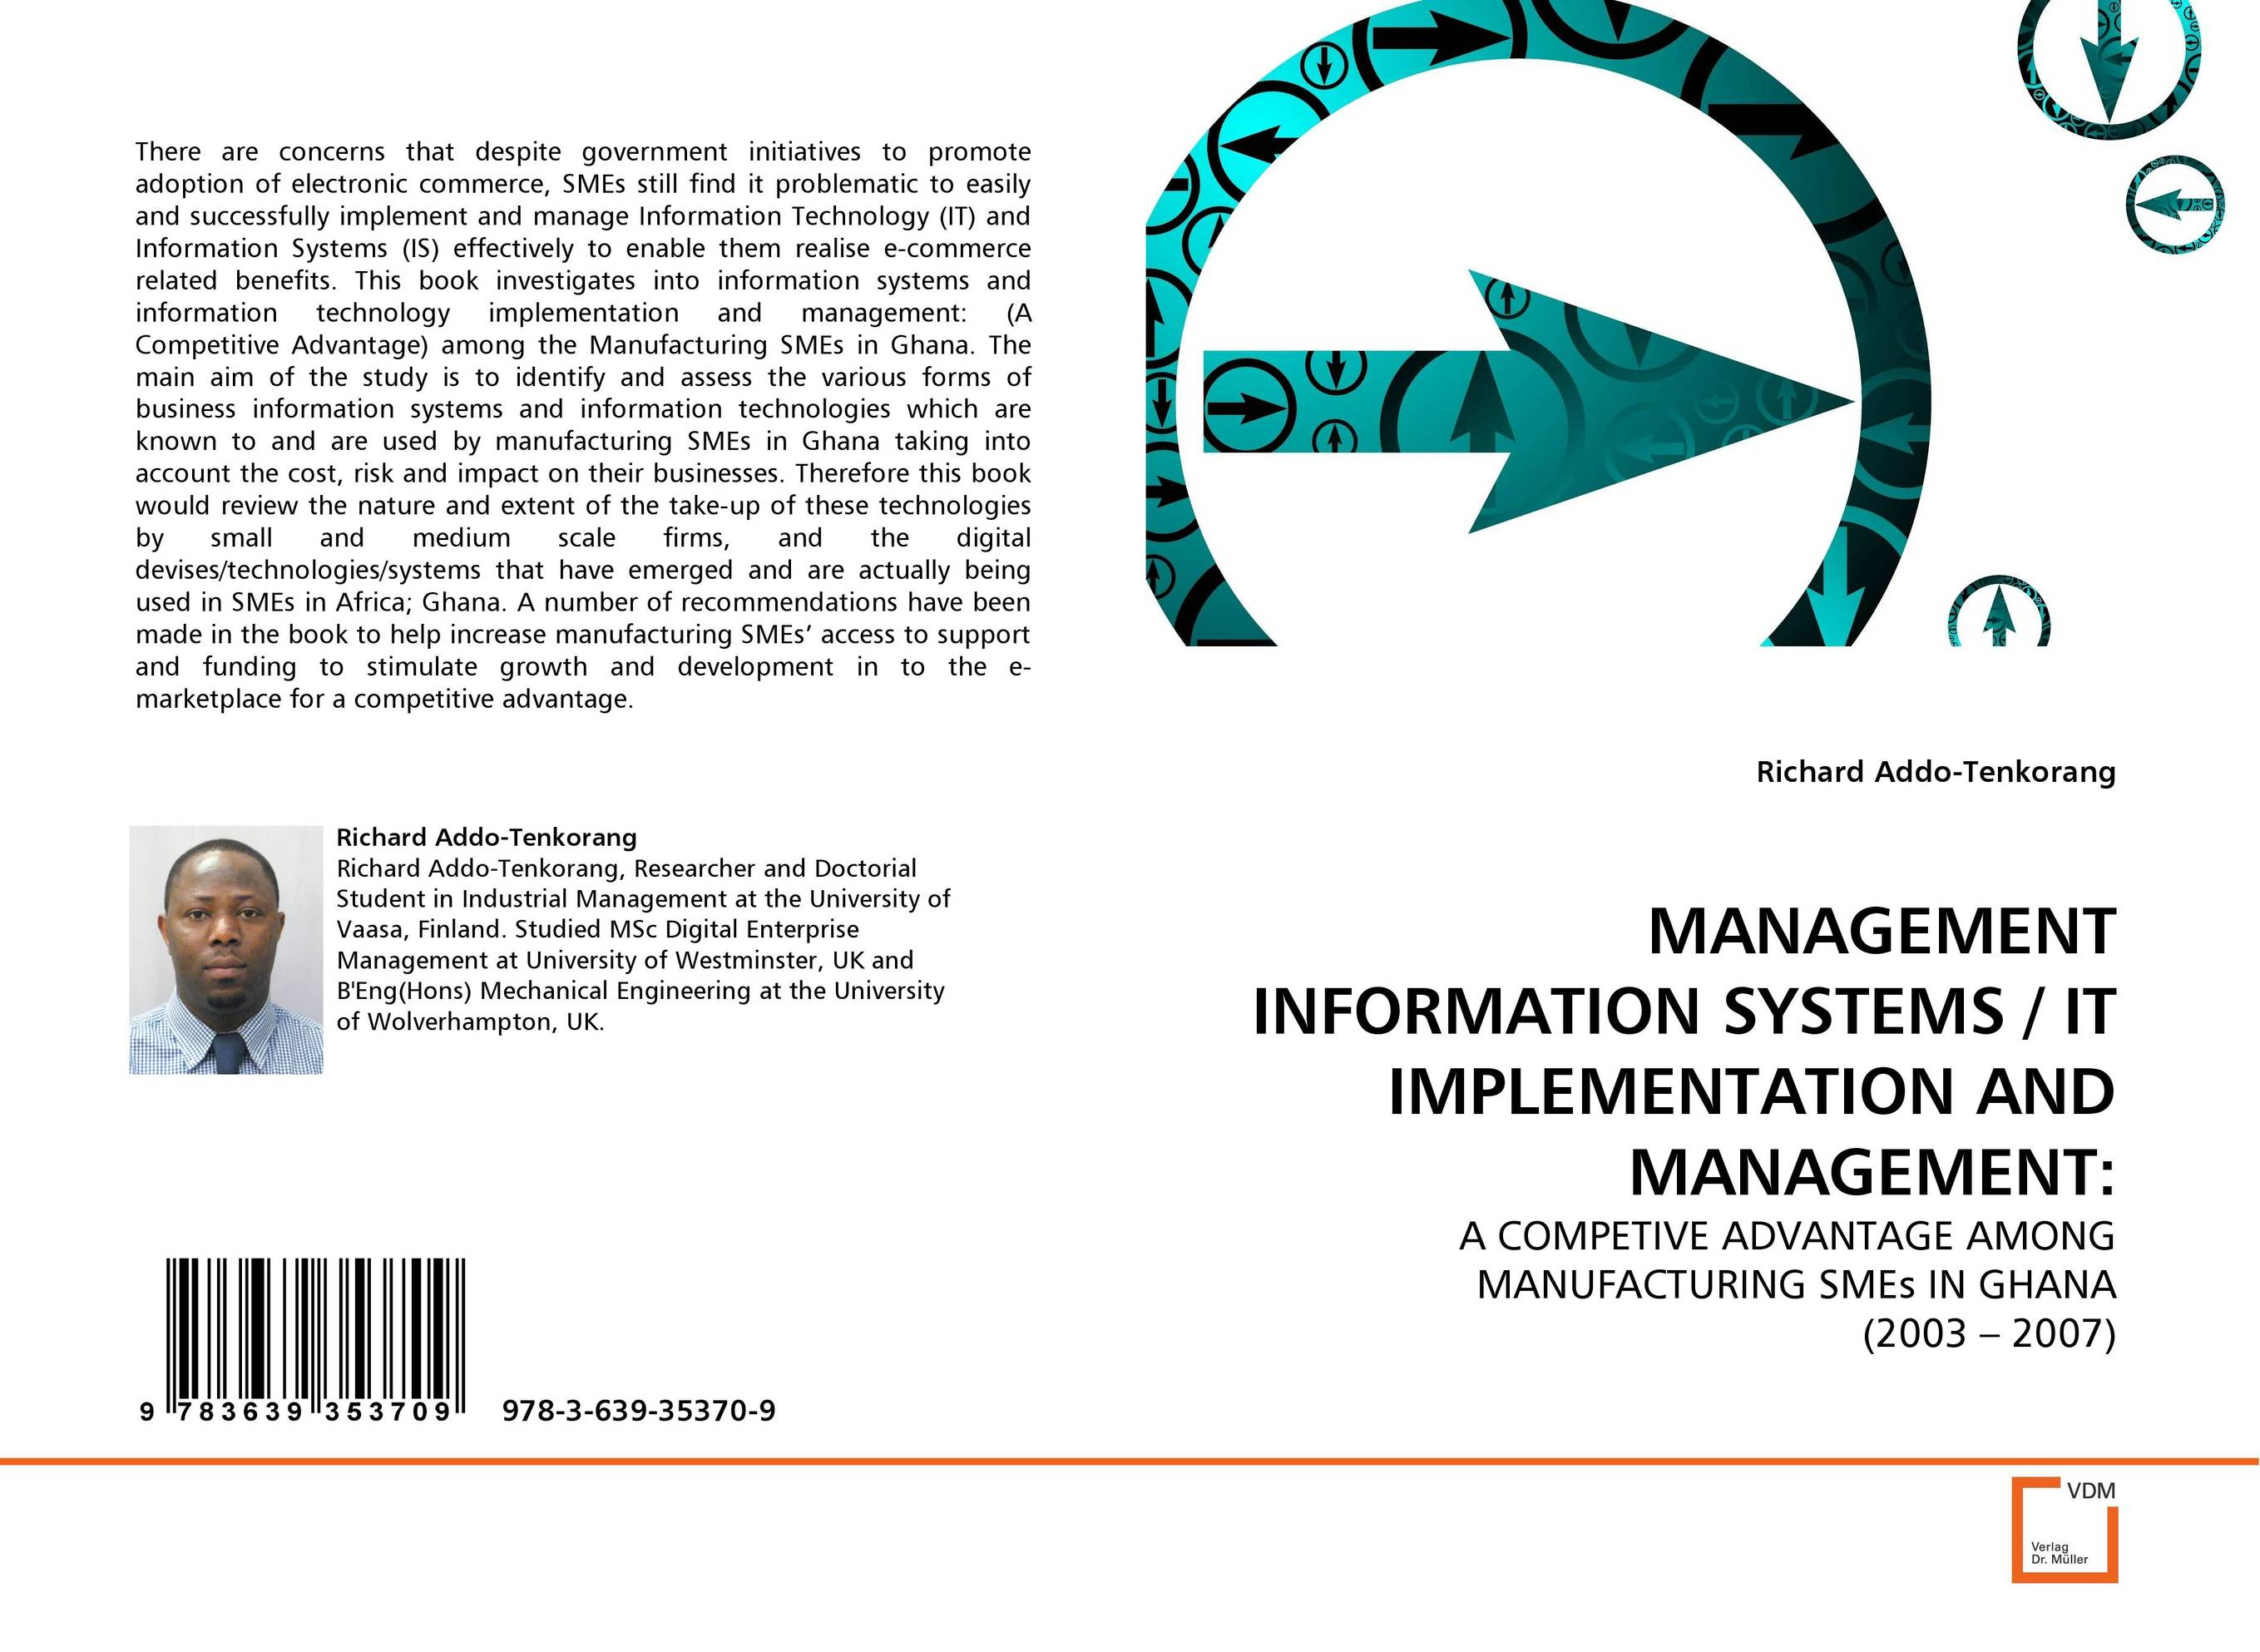 MANAGEMENT INFORMATION SYSTEMS / IT IMPLEMENTATION AND MANAGEMENT: купить